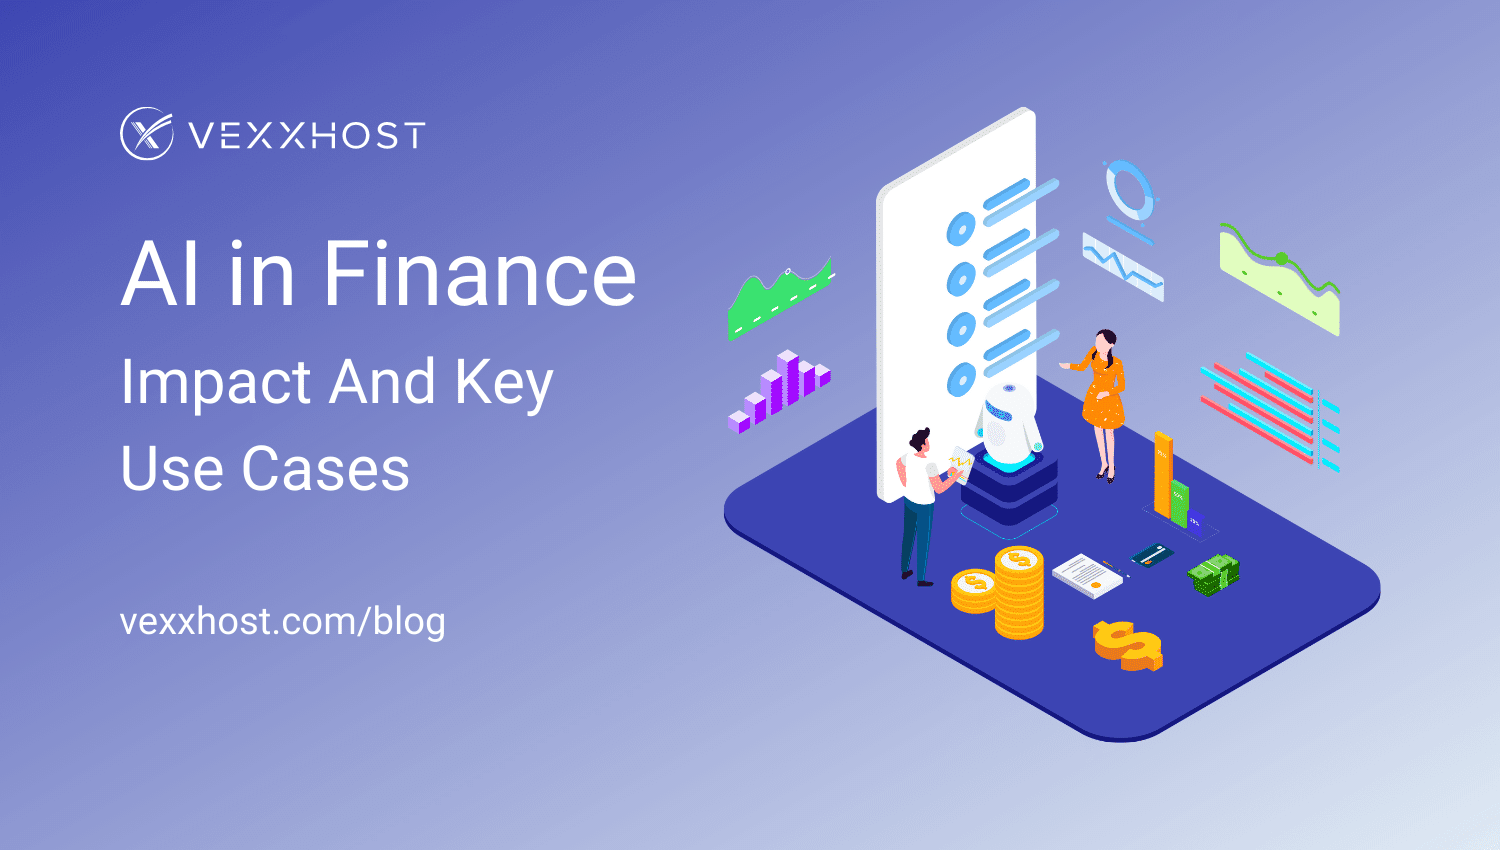 AI in Finance - Impact and Key Use Cases